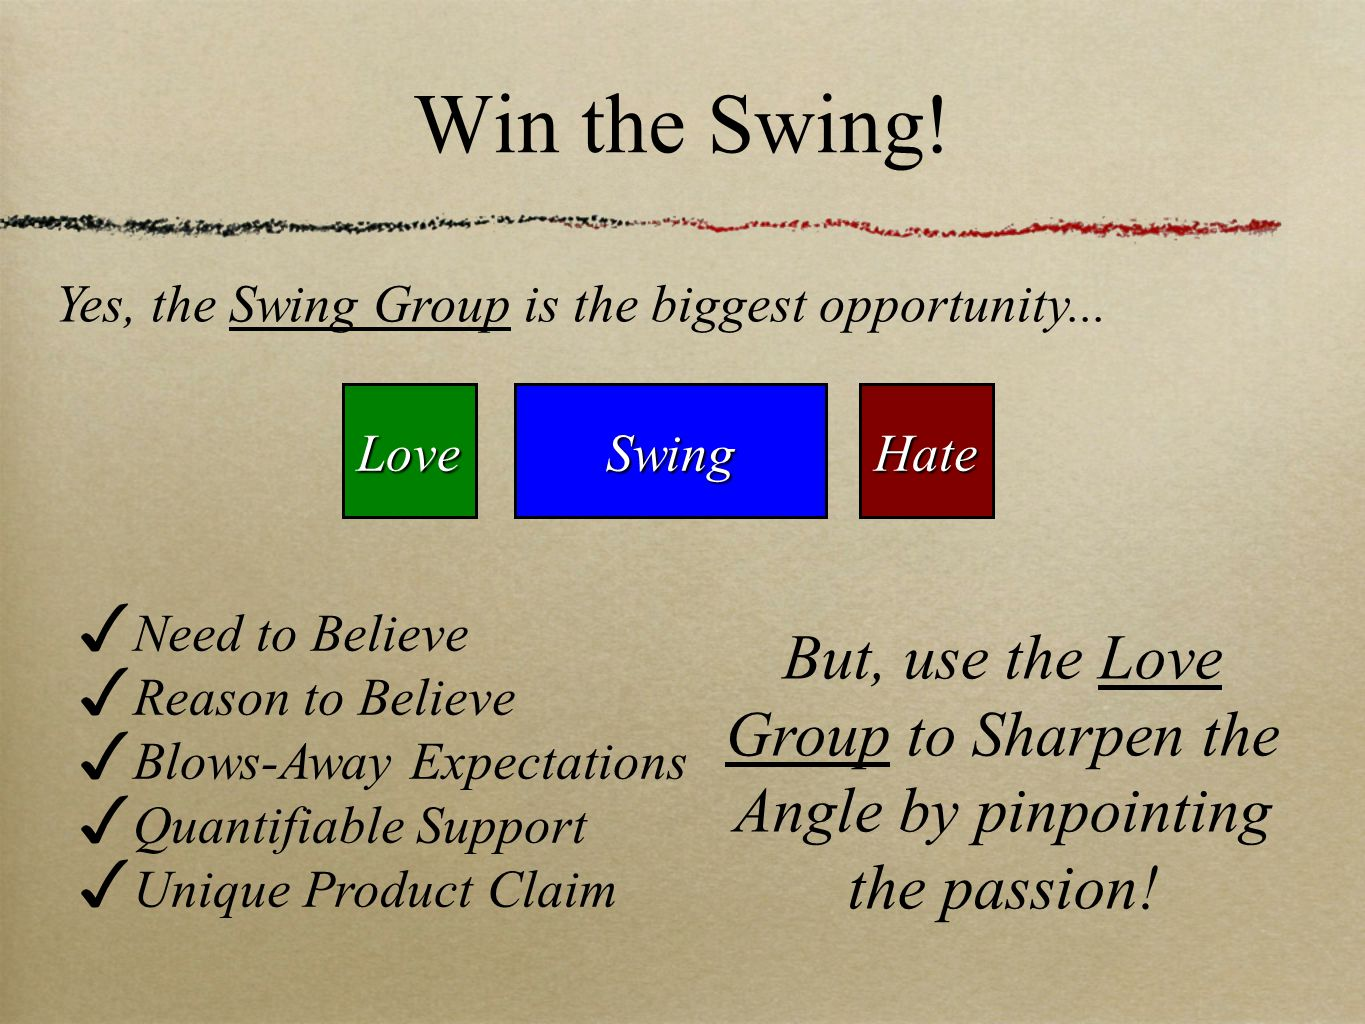 Win the Swing.